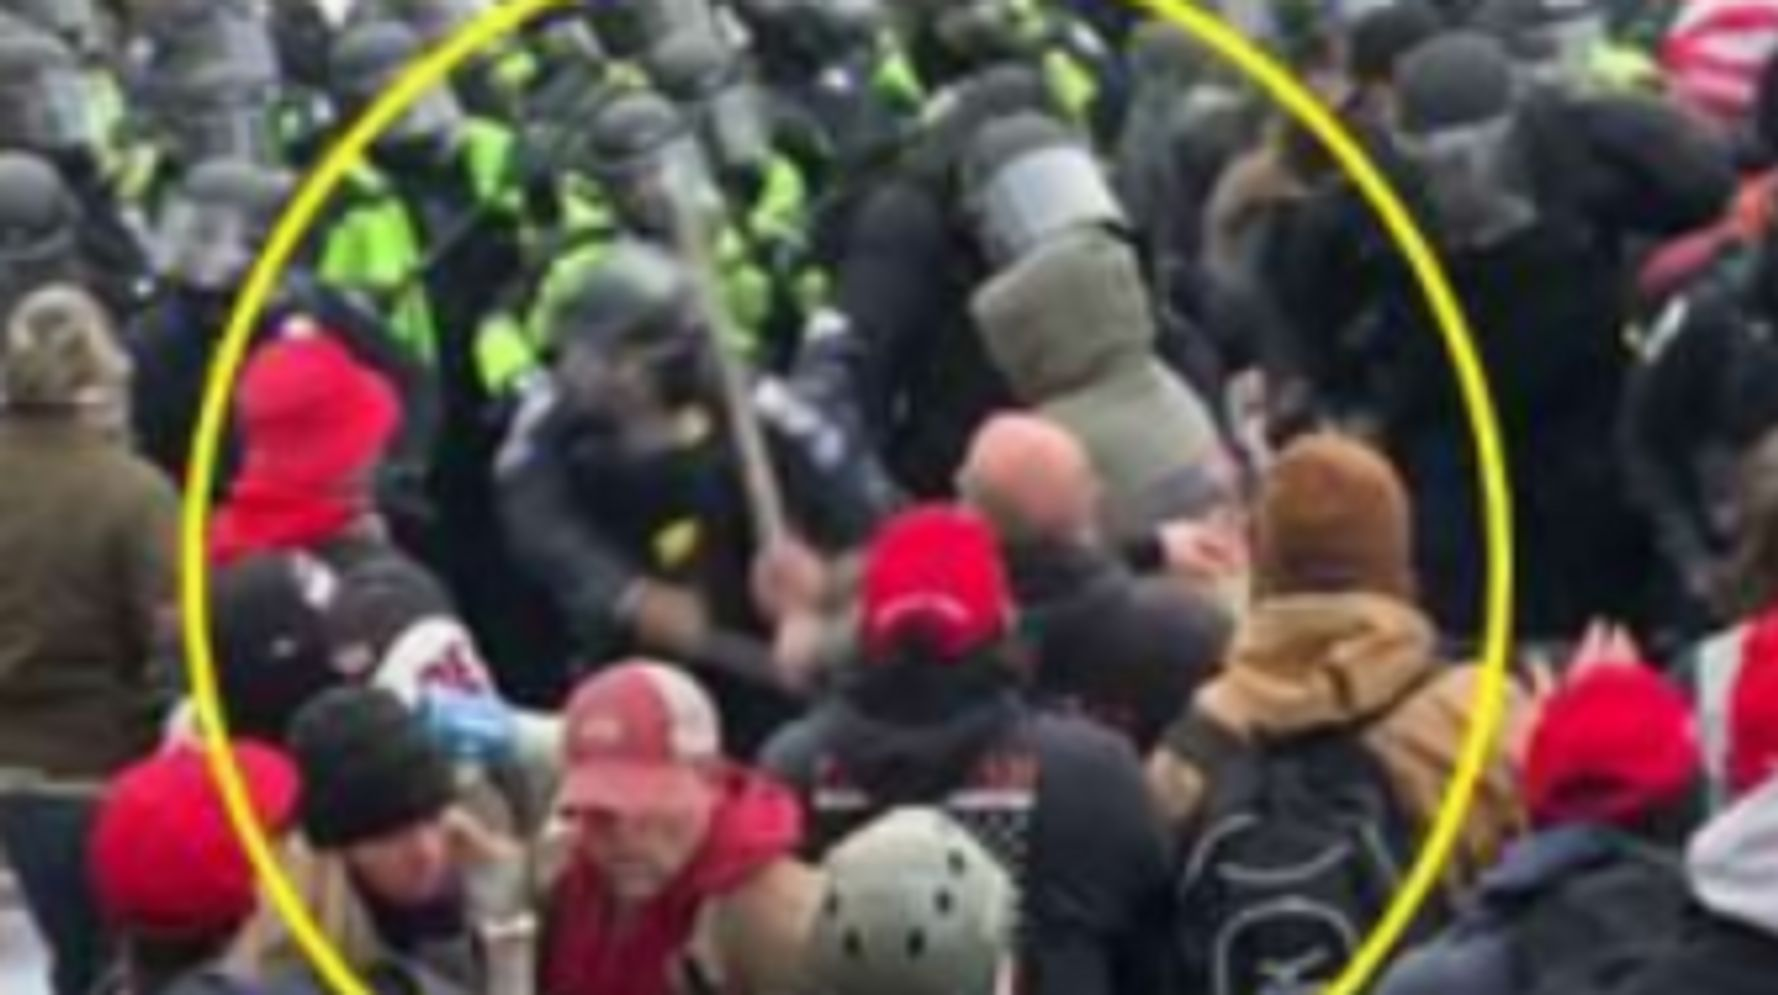 Latest Man Arrested In Capitol Riot Accused Of Attacking Police With Rod